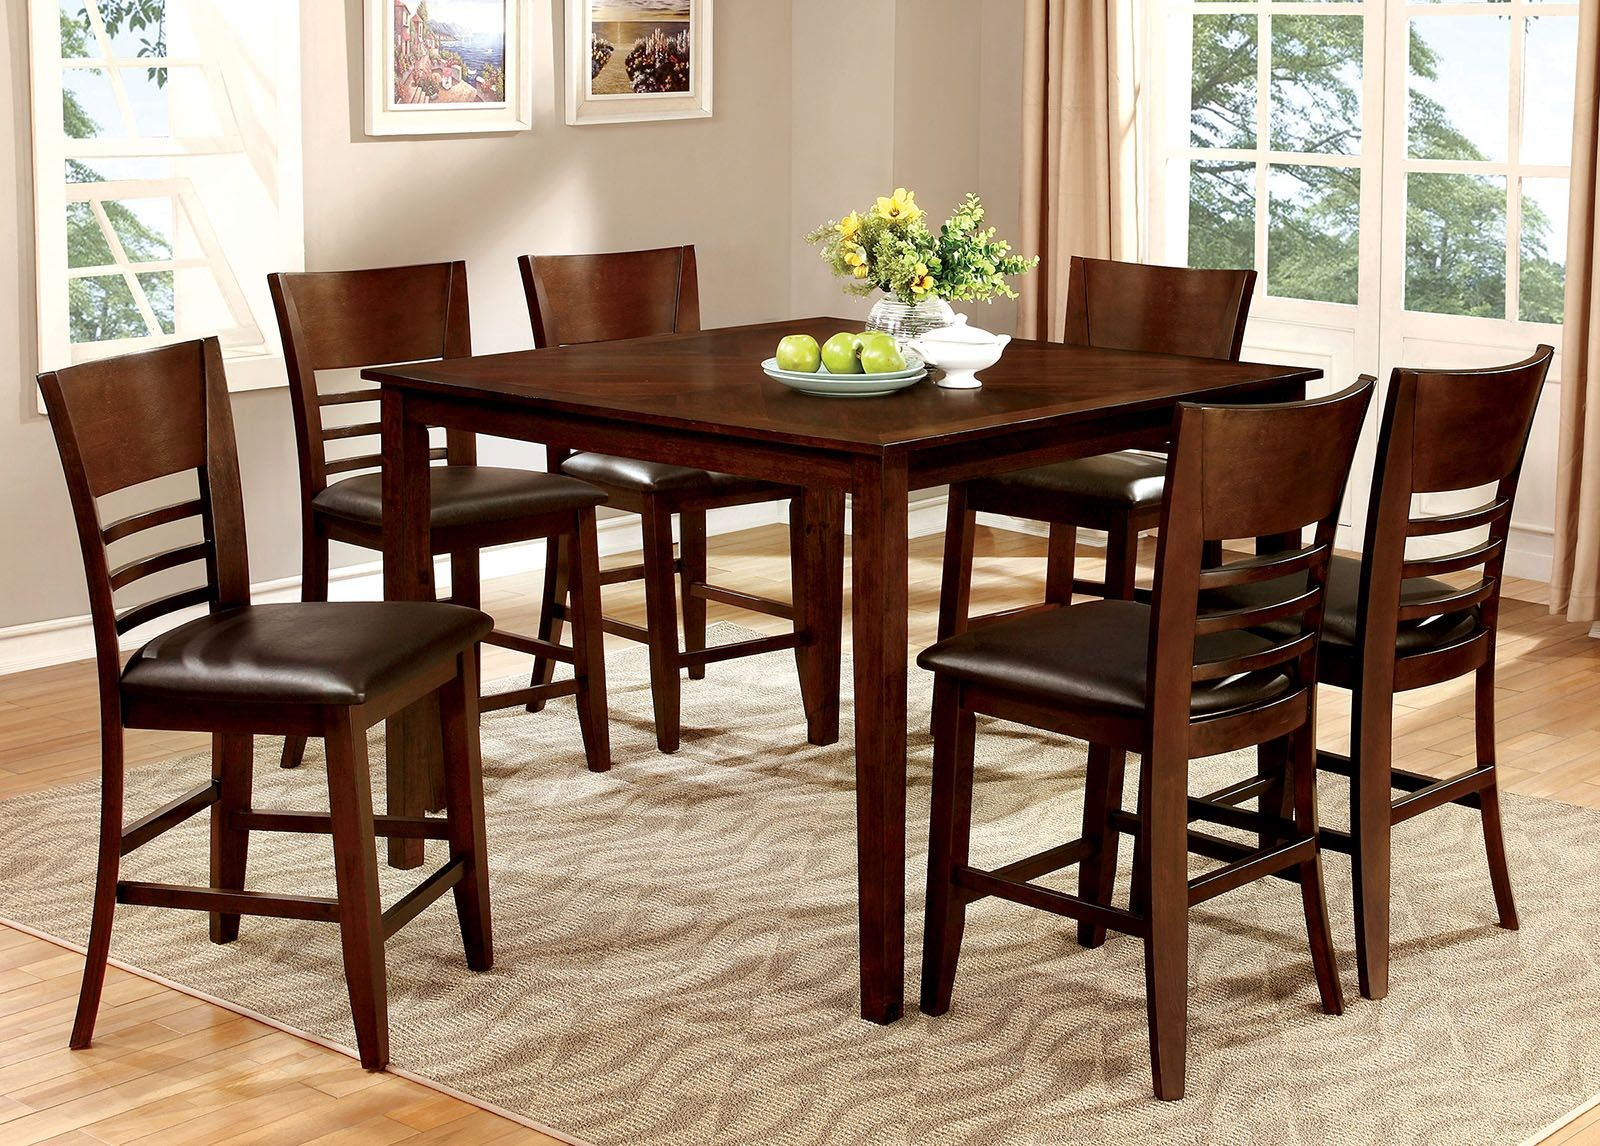 Hillsview ii 7 piece counter height dining room set for 7 piece dining room set counter height